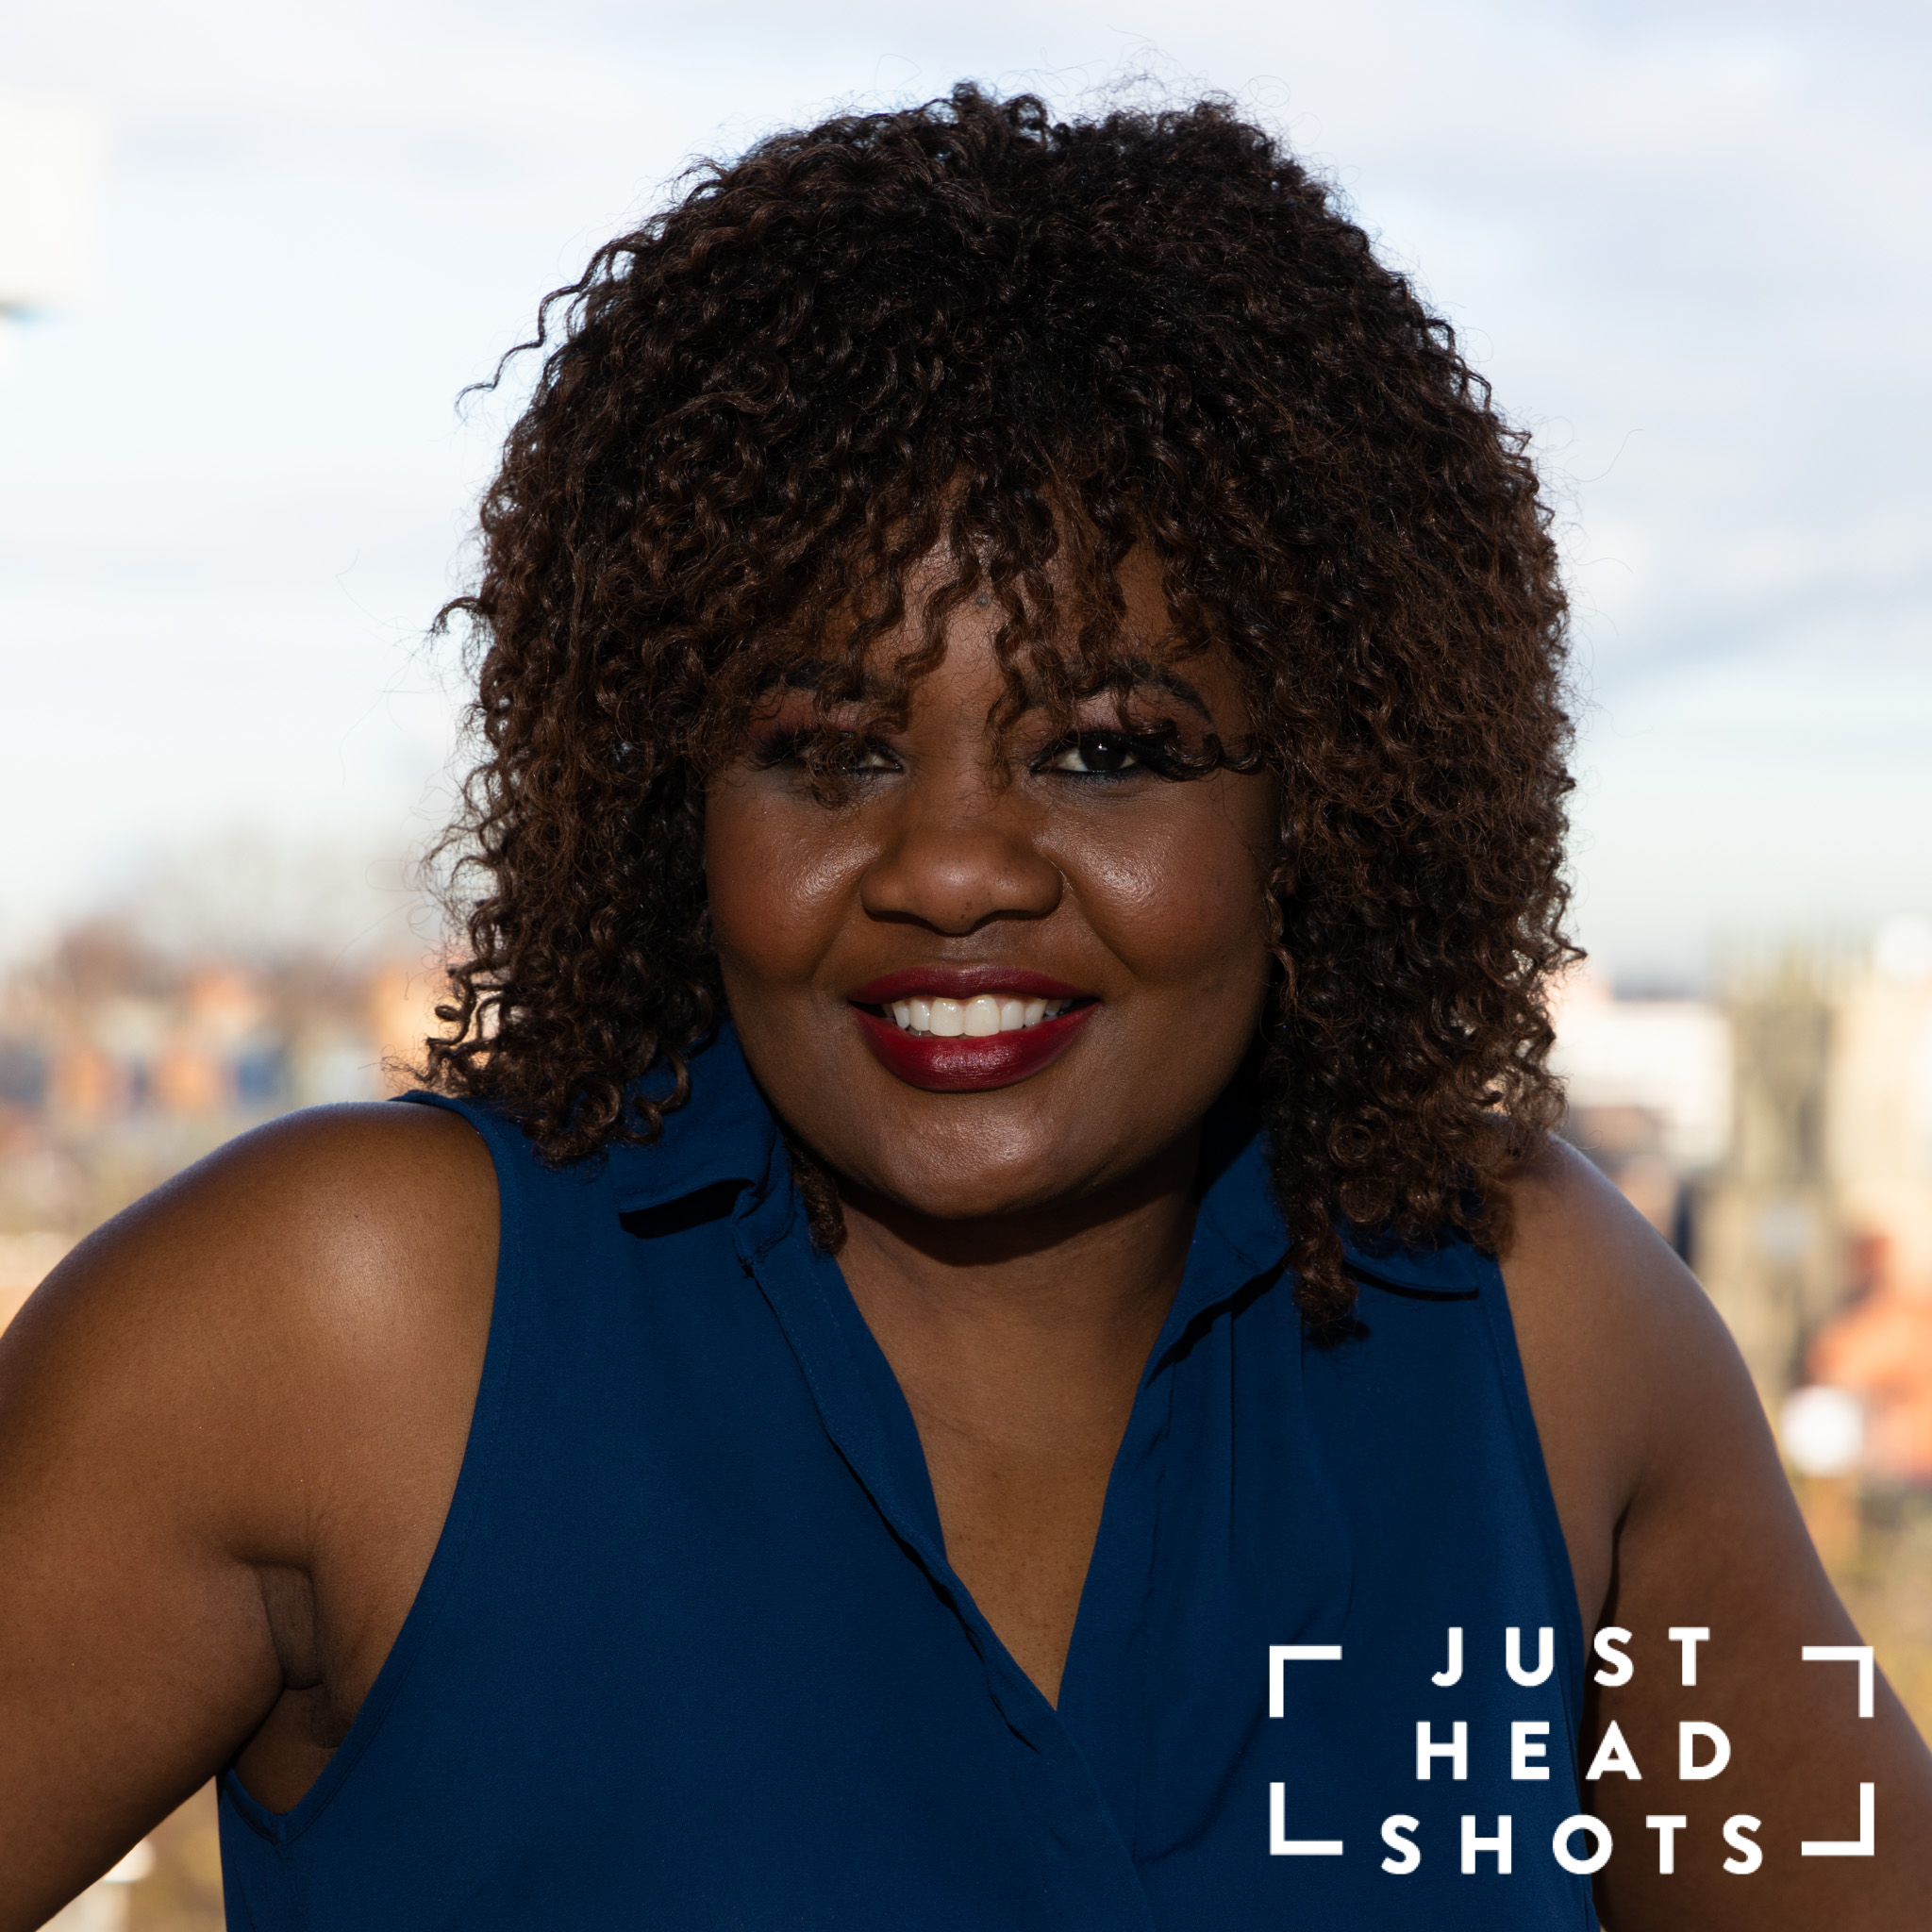 Head and shoulders business portrait of a black woman wearing a blue sleeveless blouse photographed with flash and natural light with Chester city centre in the background.